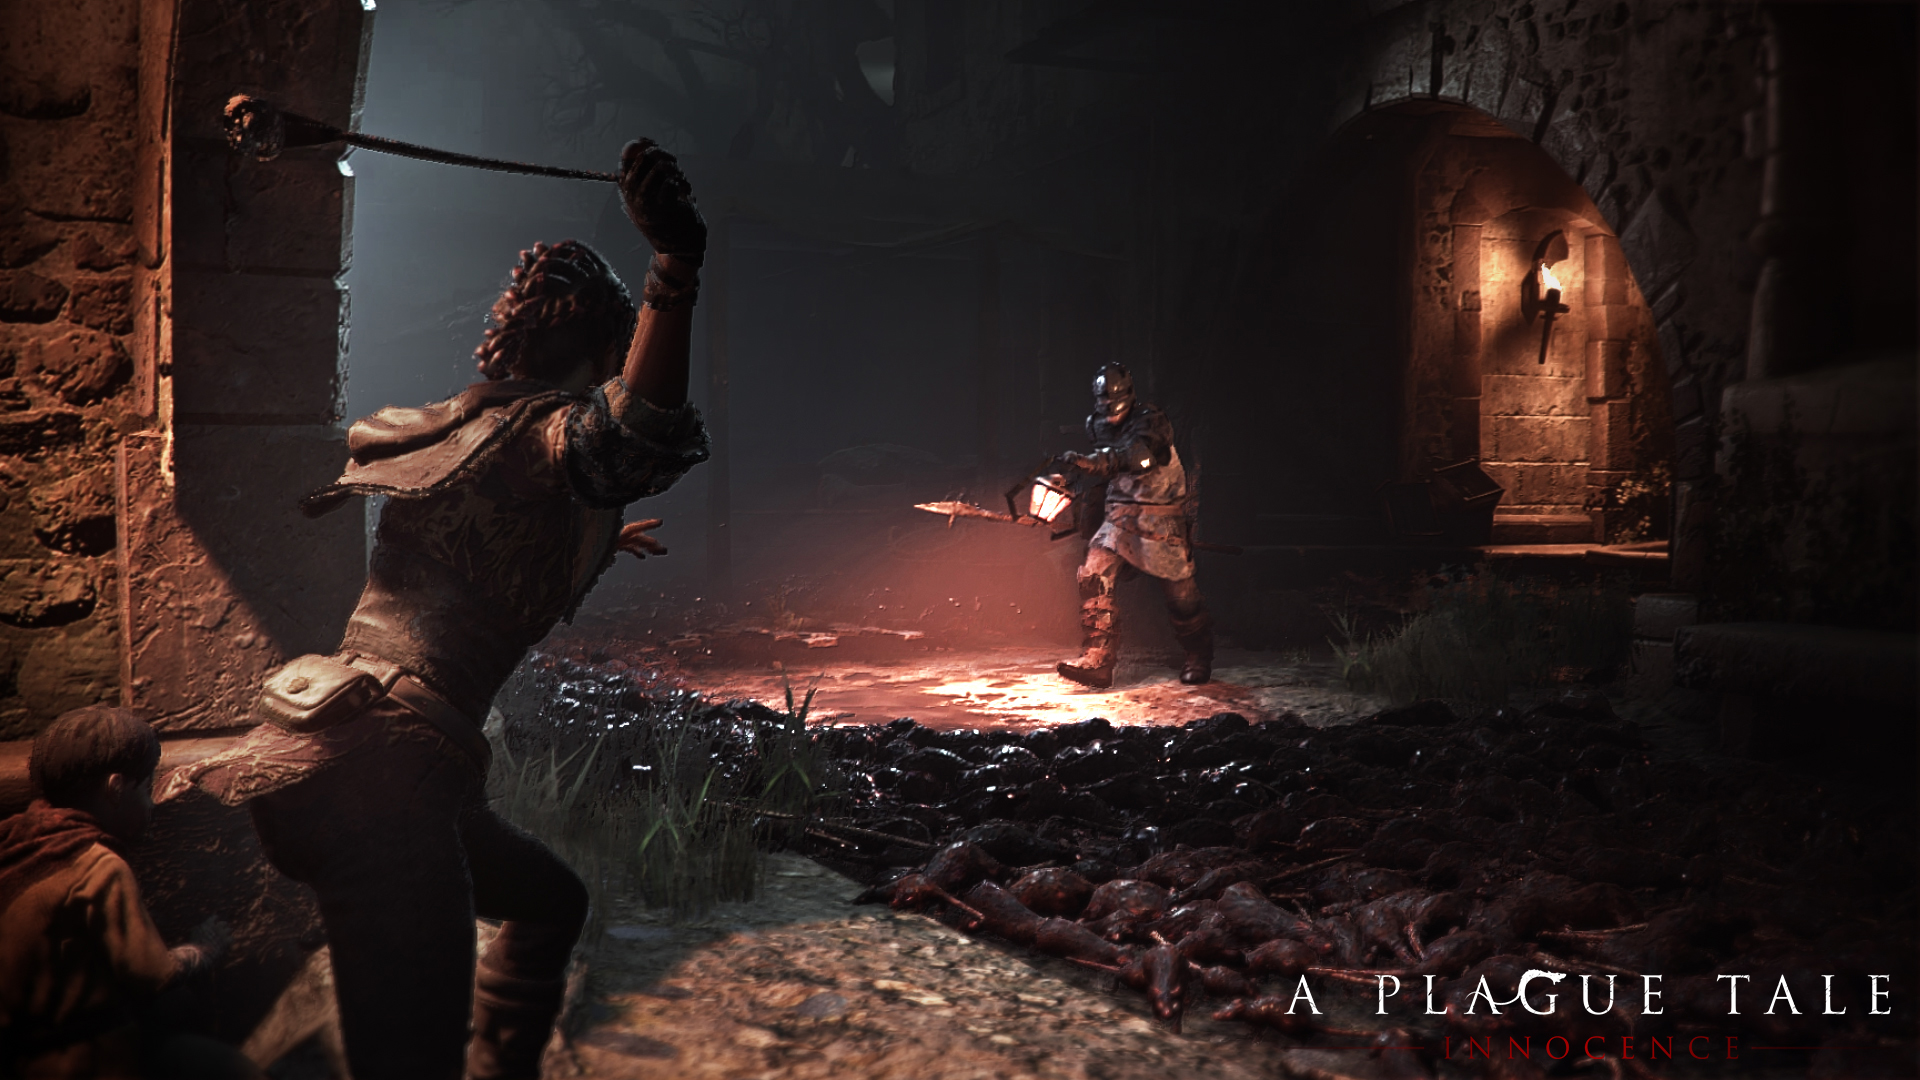 Image from A Plague's Tale Innocence